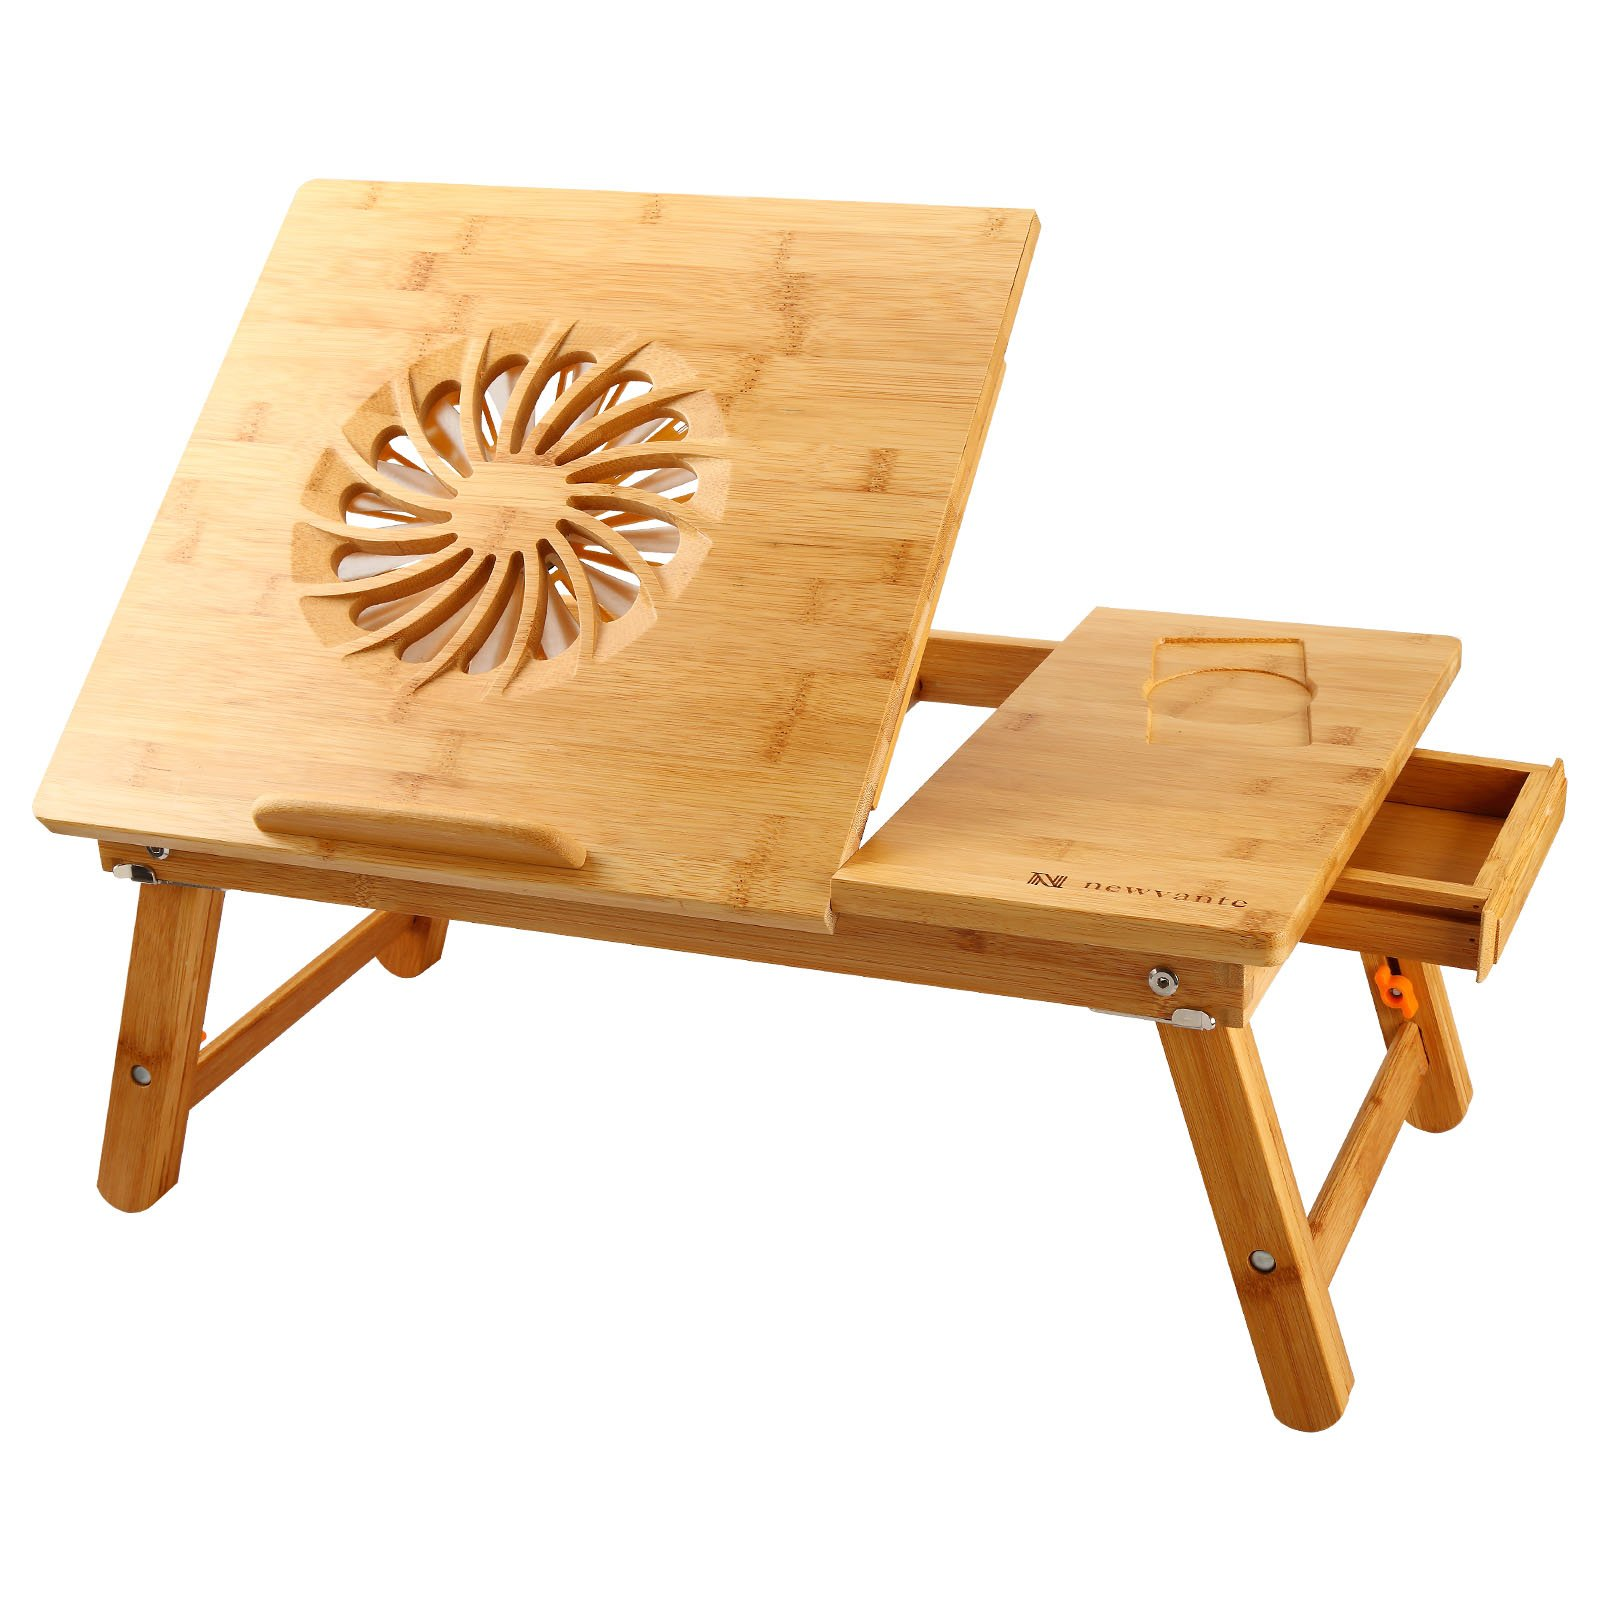 Laptop Desk Nnewvante Adjustable Laptop Desk Table 100% Bamboo with USB Fan Foldable Breakfast Serving Bed Tray w' Drawer by NNEWVANTE